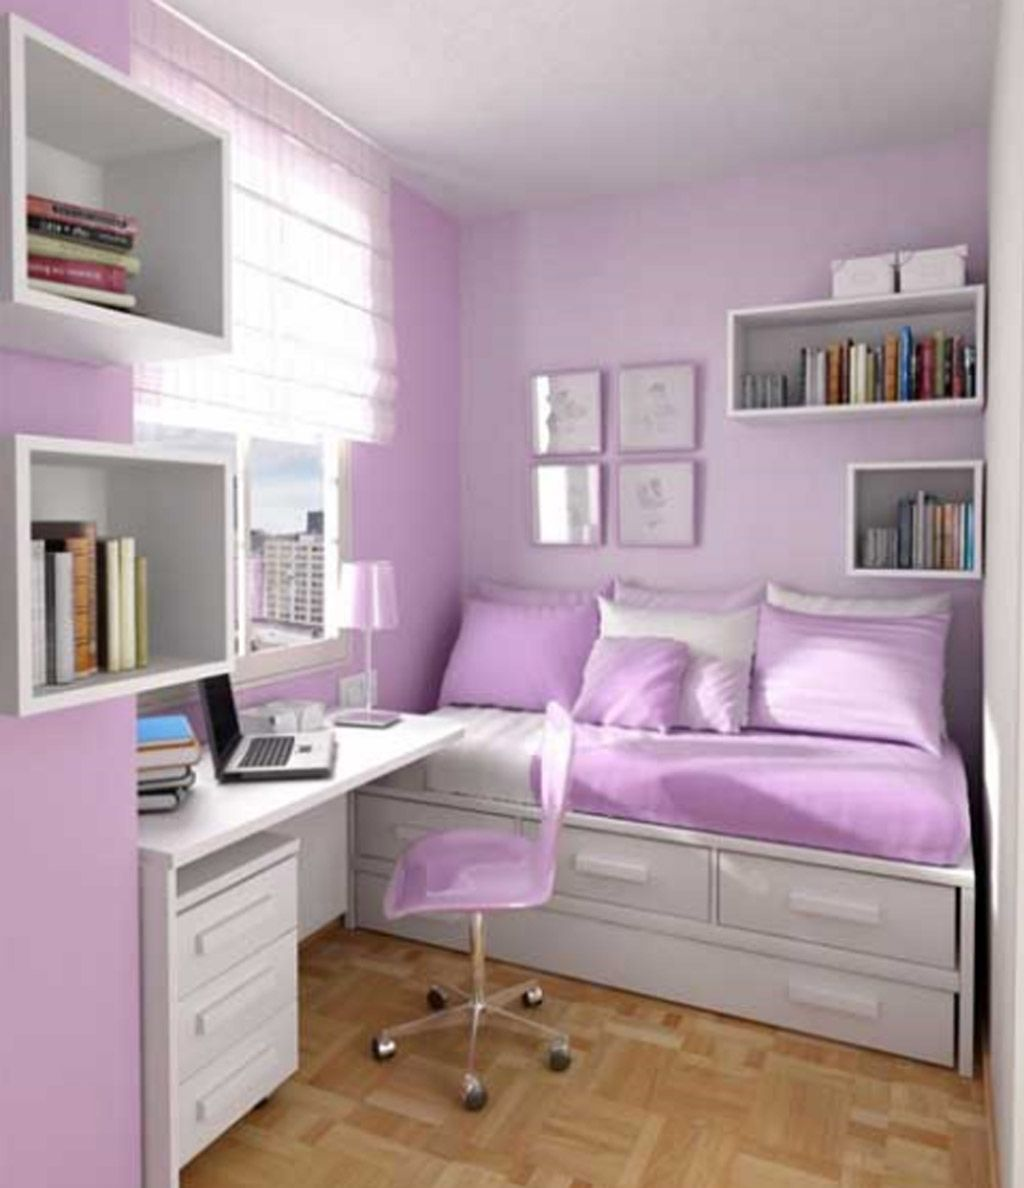 Decor For Teenage Bedrooms Room decorating ideas Light purple